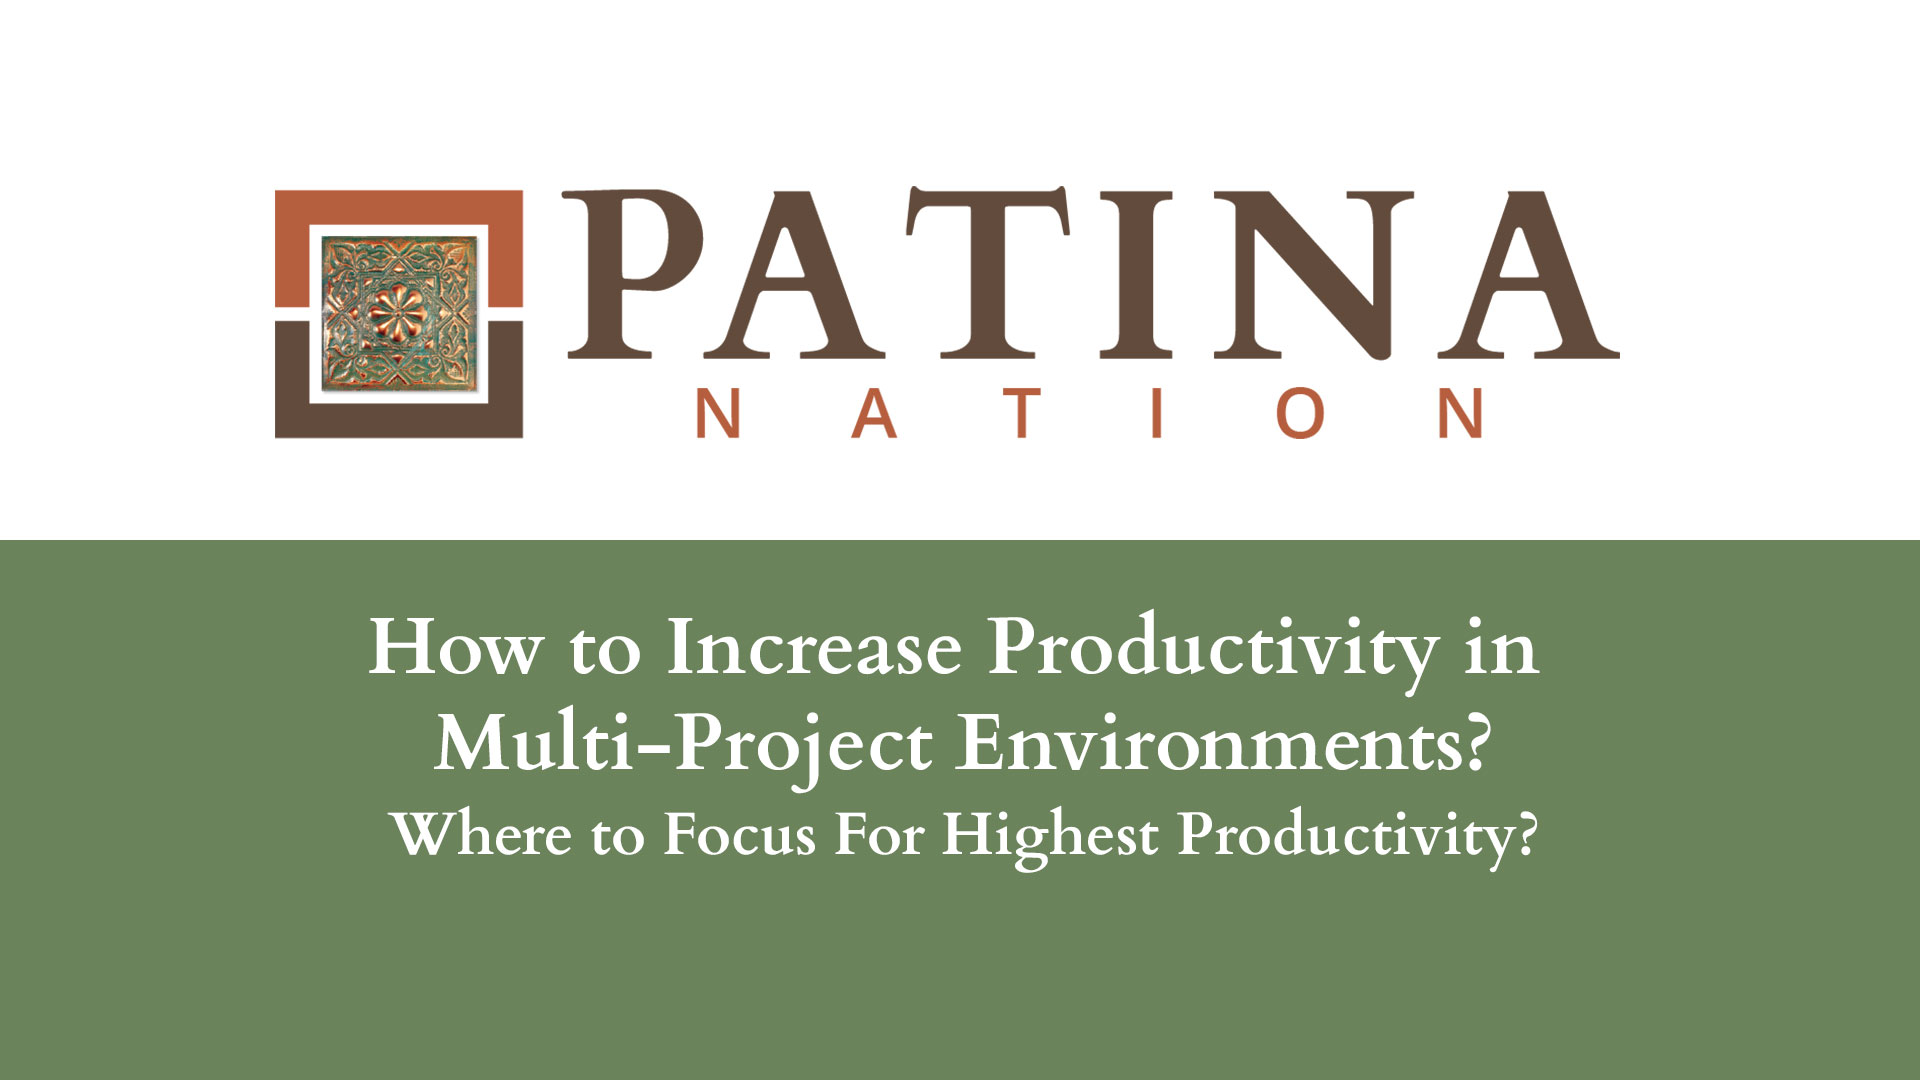 How to Increase Productivity in Multi-Project Environments?